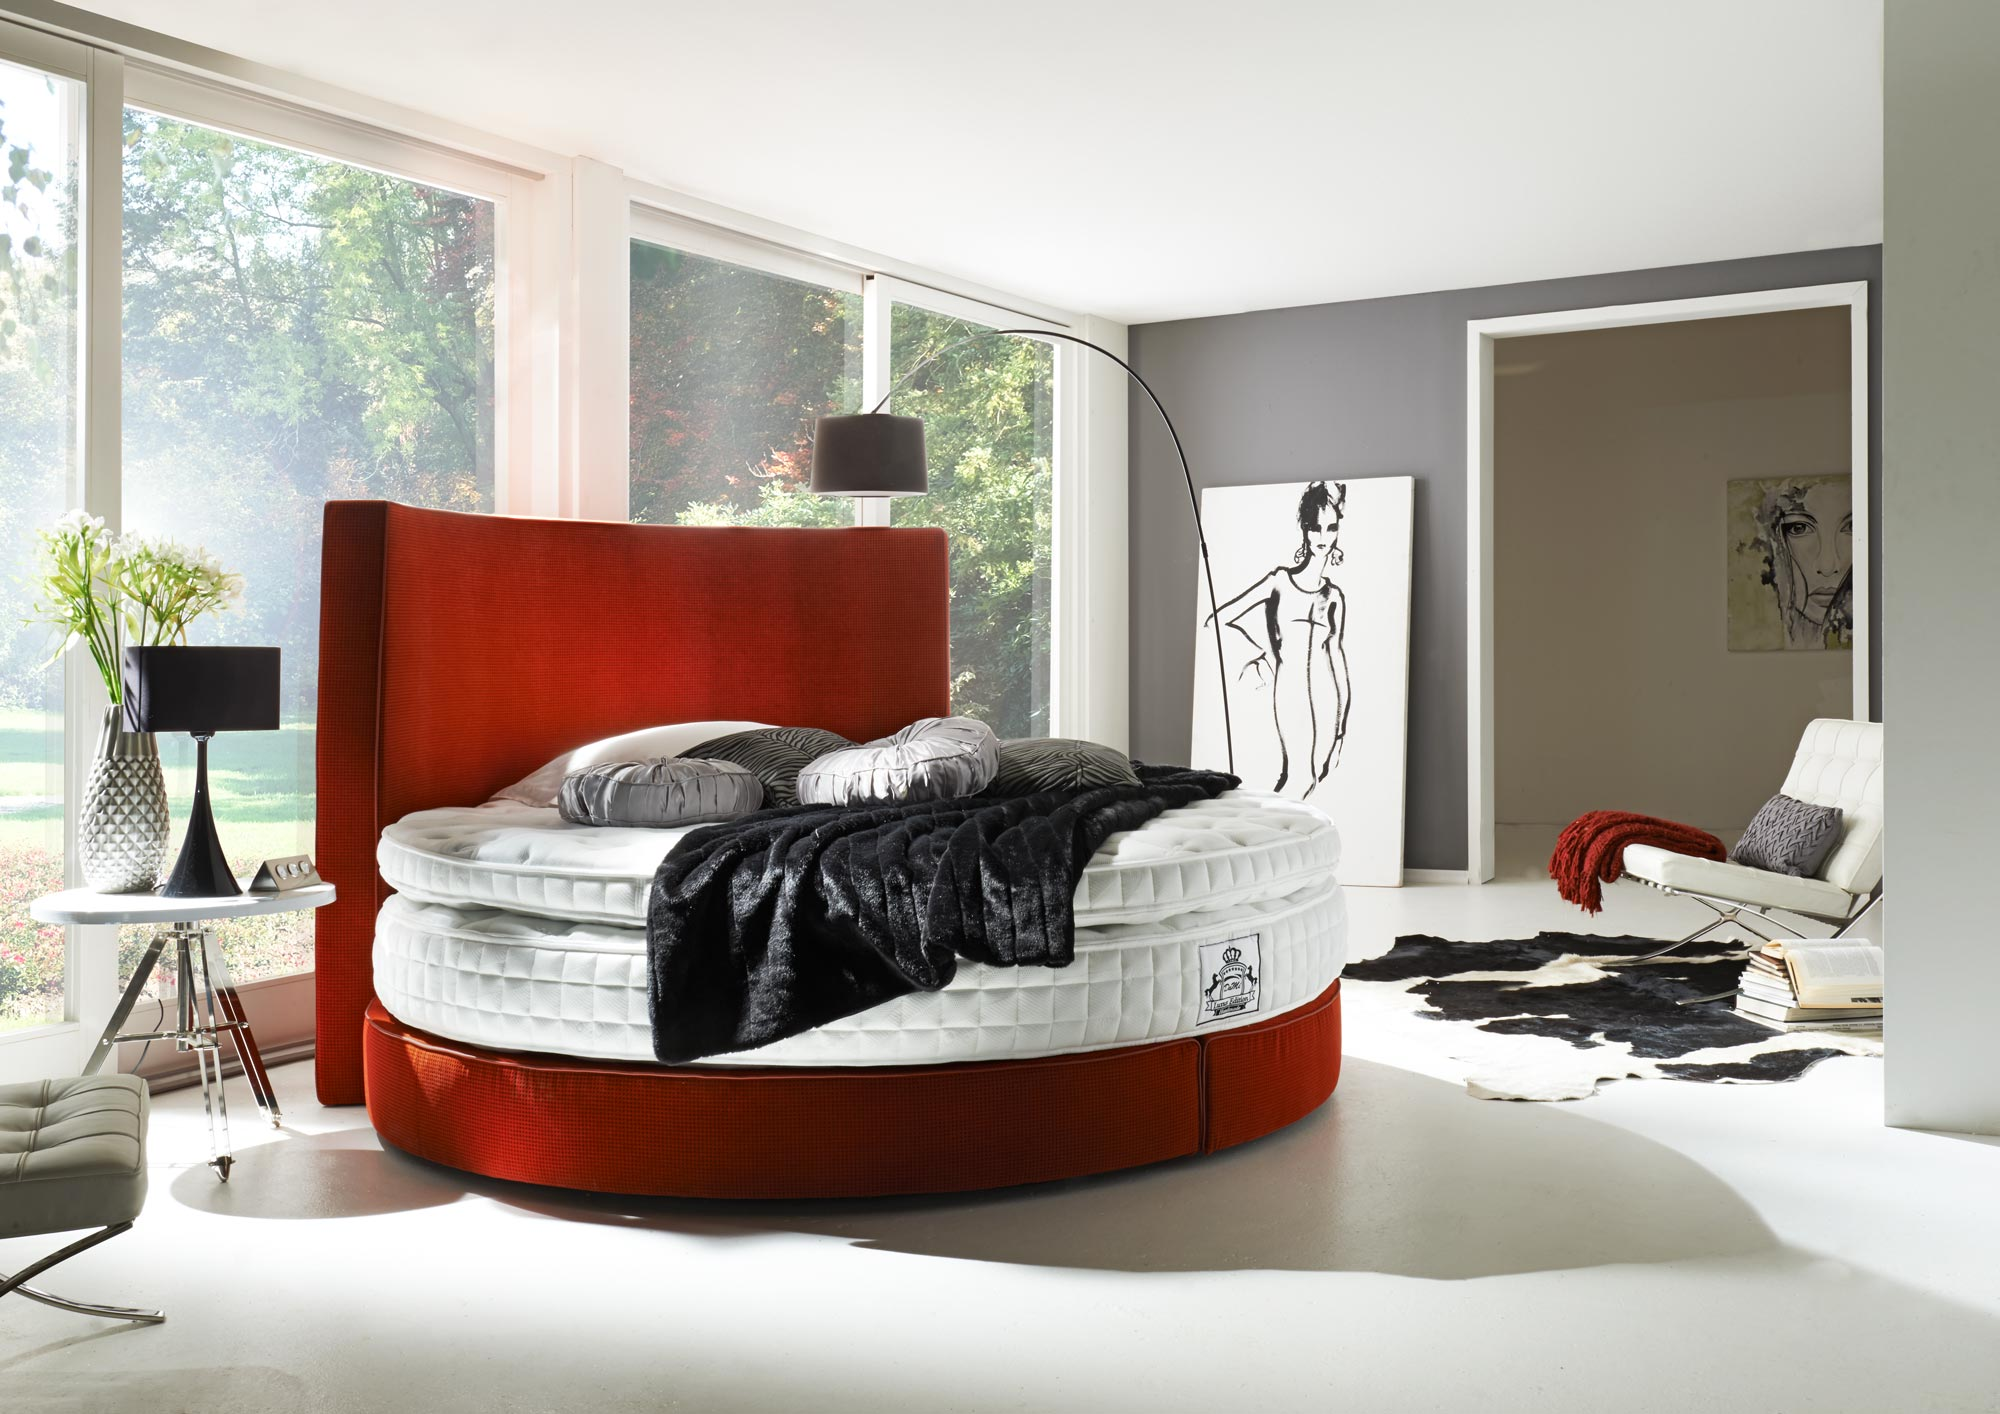 boxspringbett rondo liegefl che rund 225 cm in vielen farben. Black Bedroom Furniture Sets. Home Design Ideas